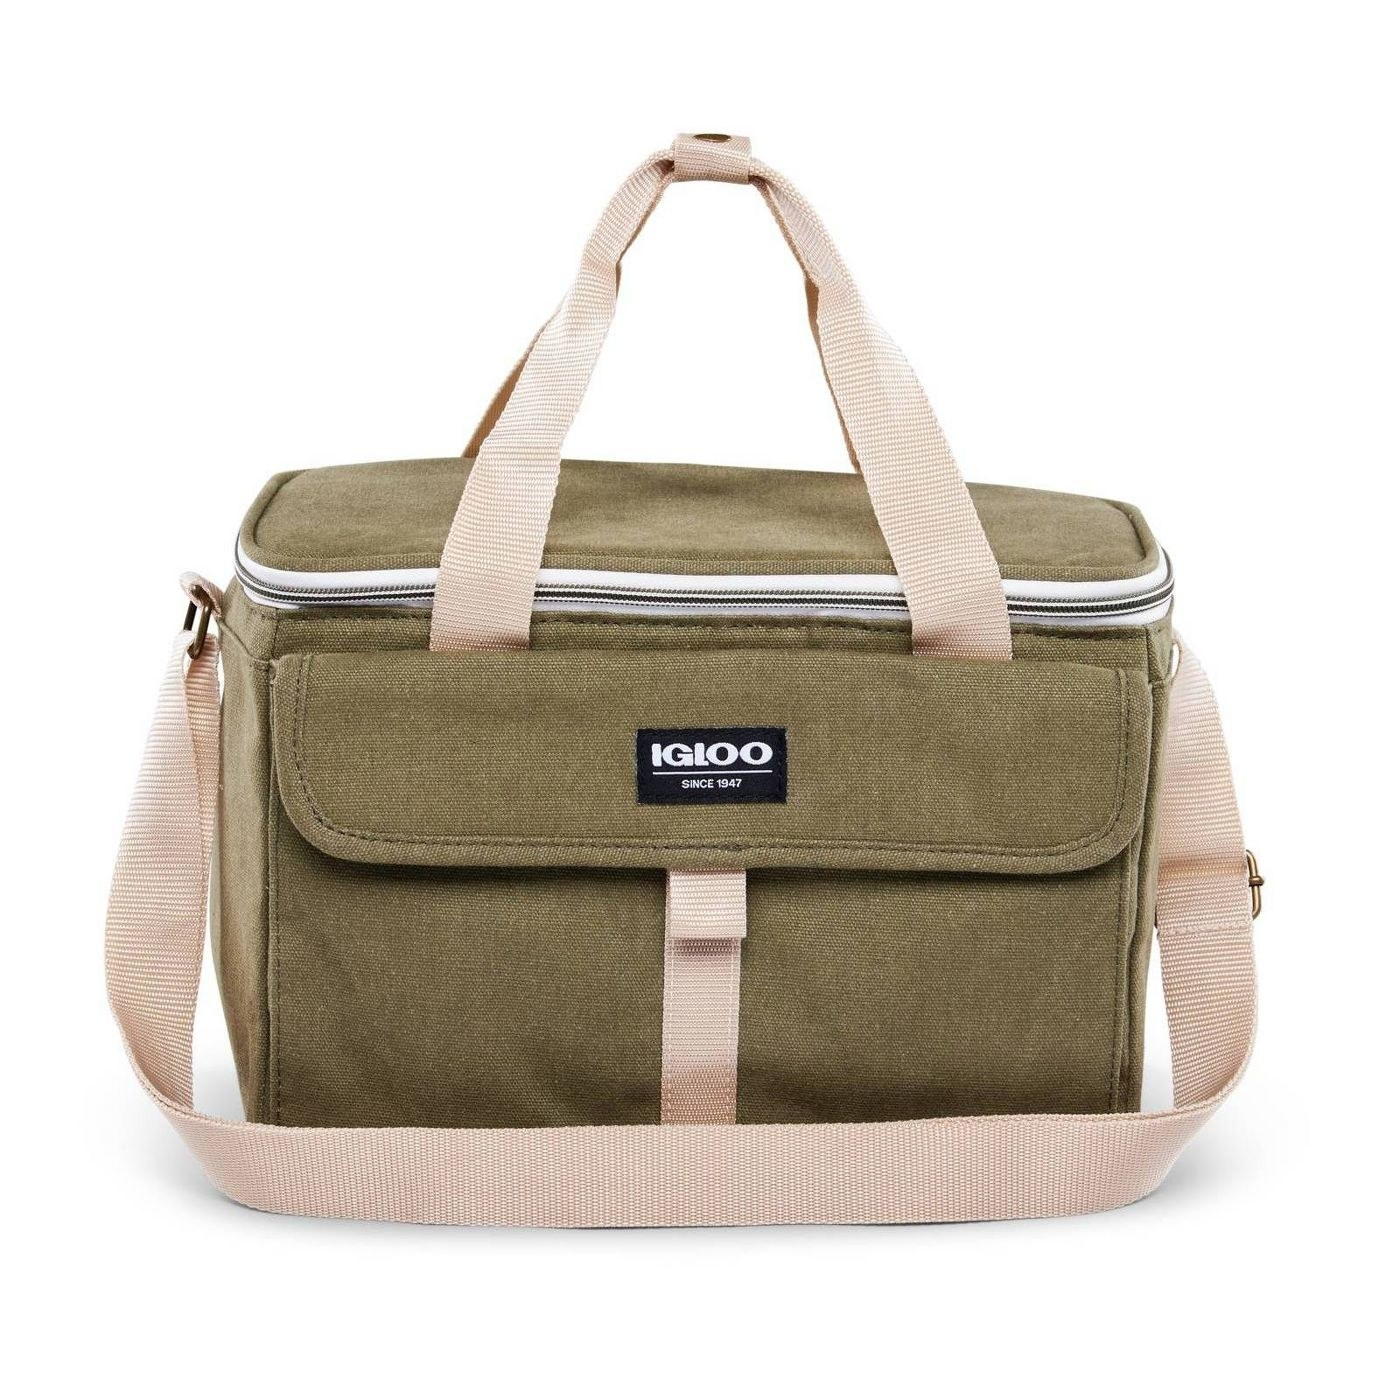 Olive green lunch bag with tan straps